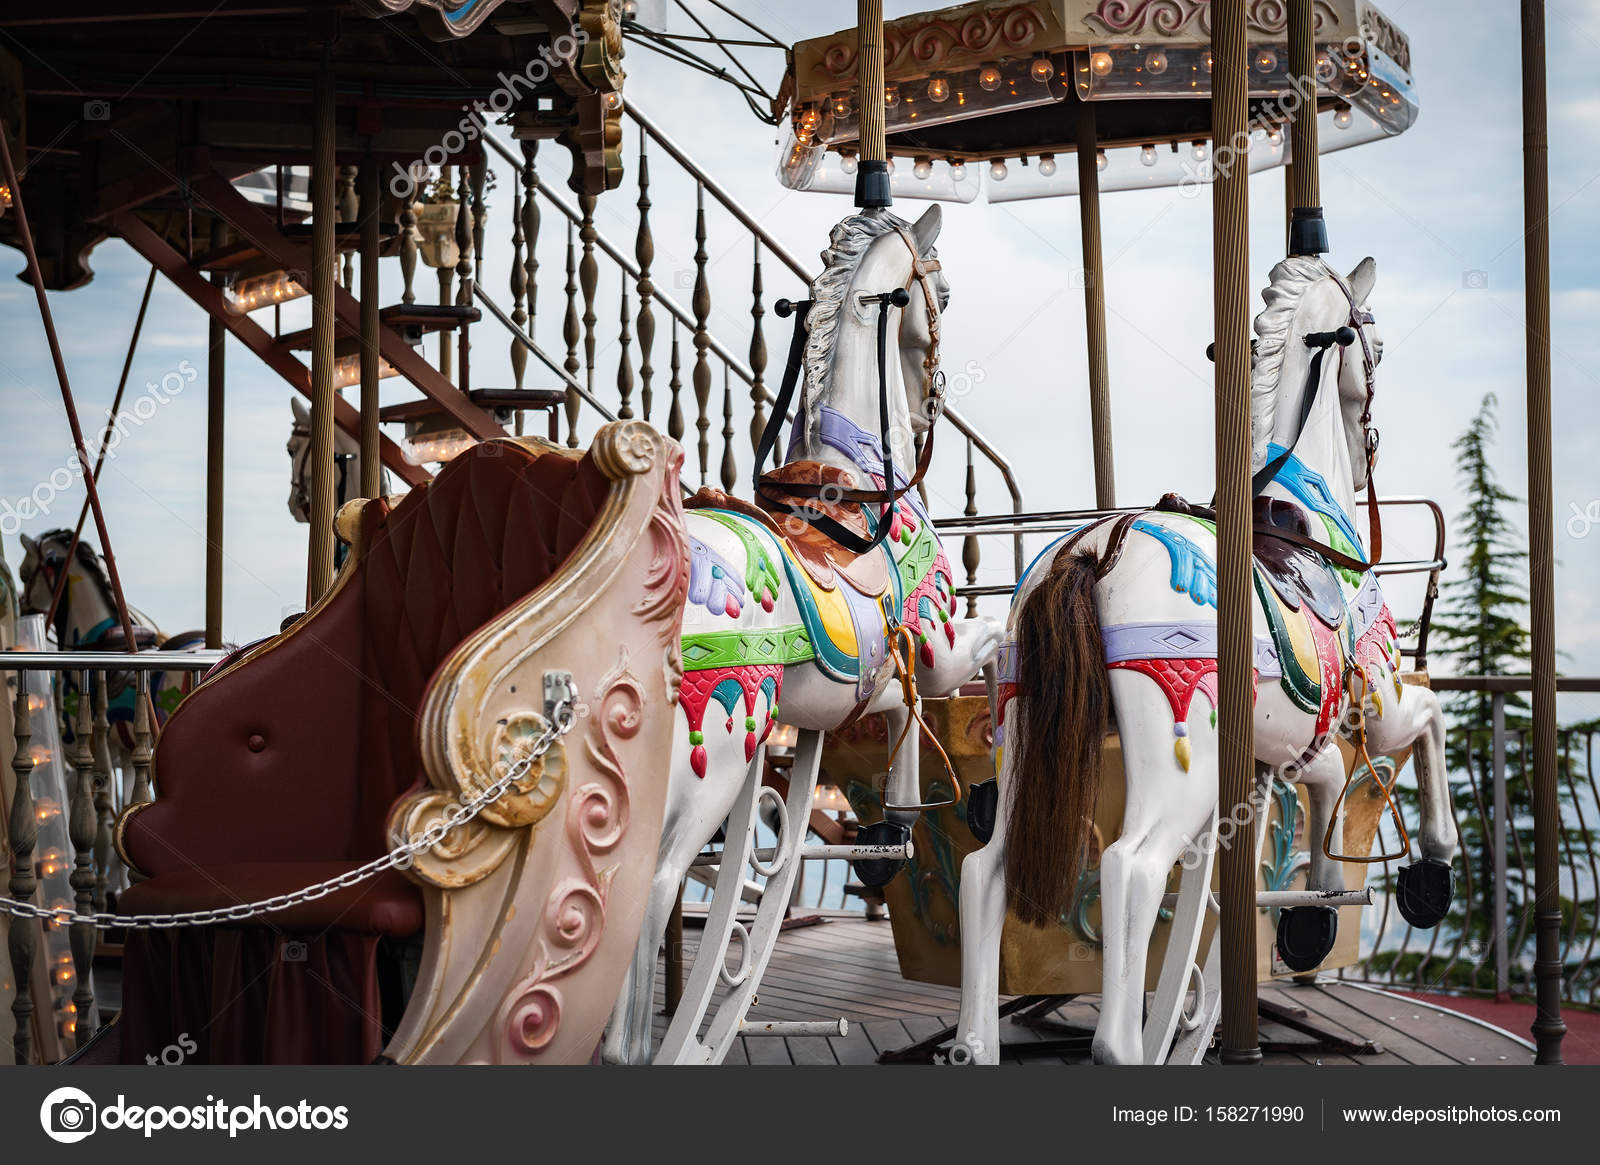 Old Abandoned Carousel Horses Stock Editorial Photo C Gorelovs 158271990